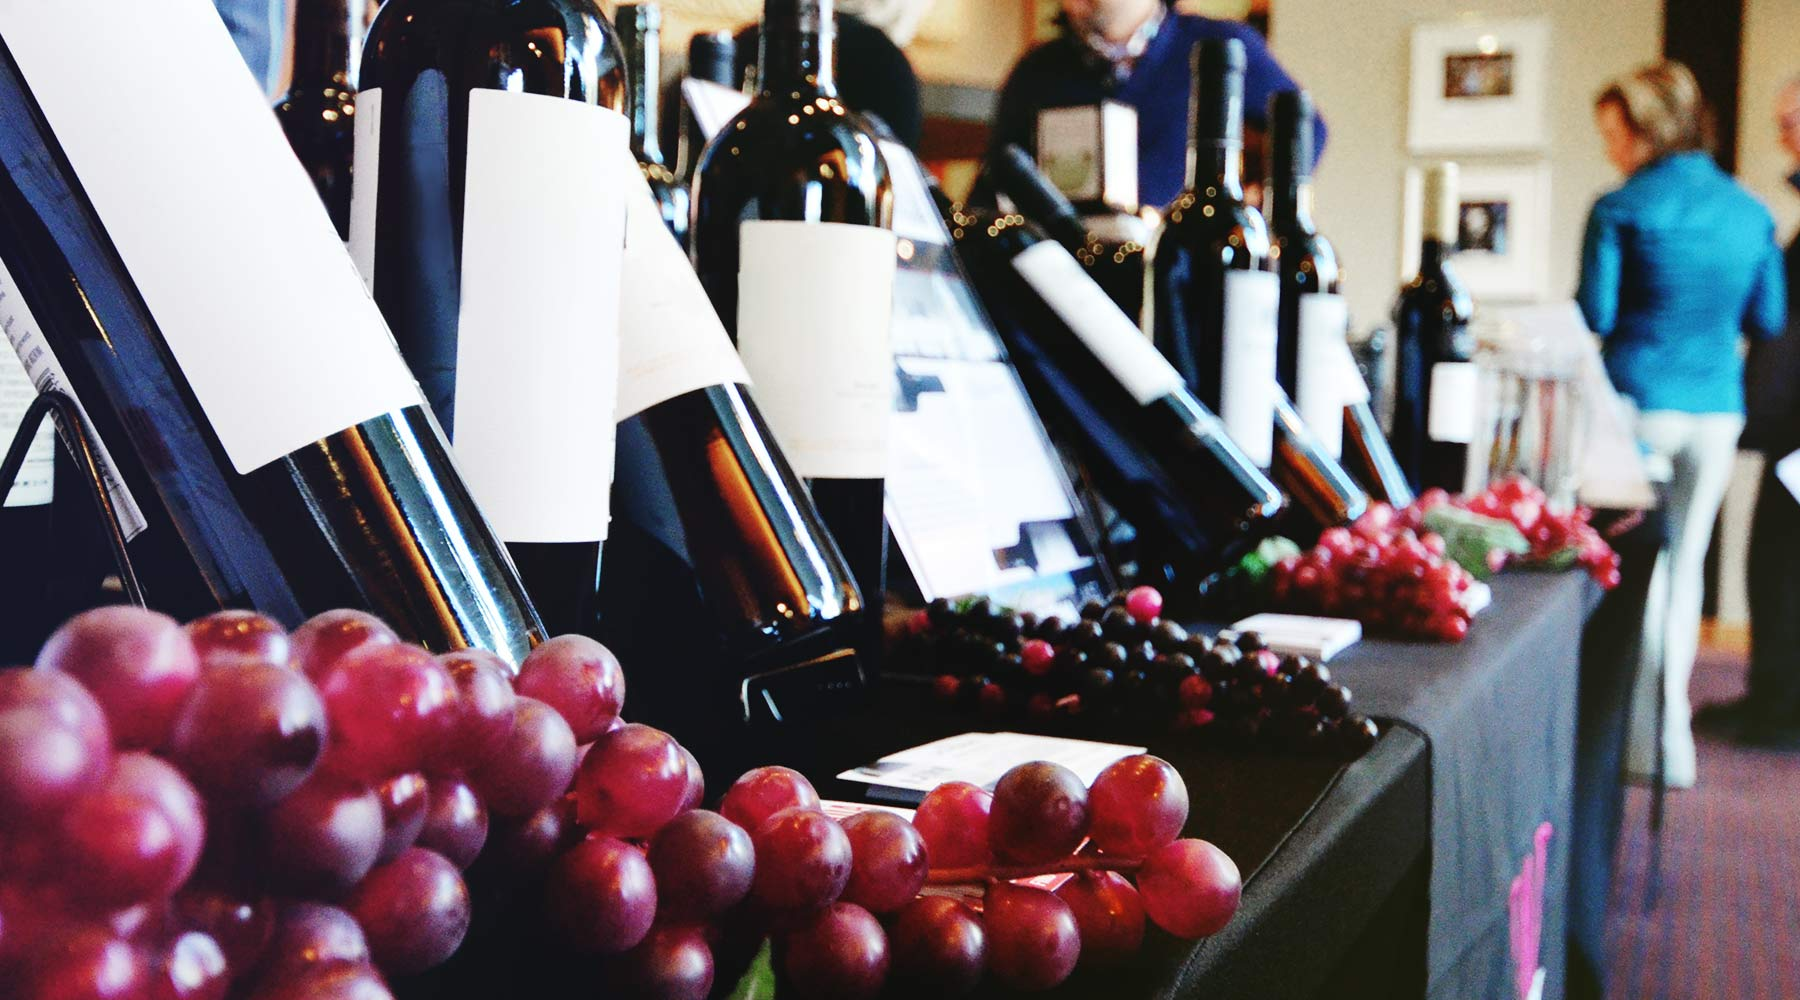 Boutique Wine Tasting and More on Newbury Street | Just Wine